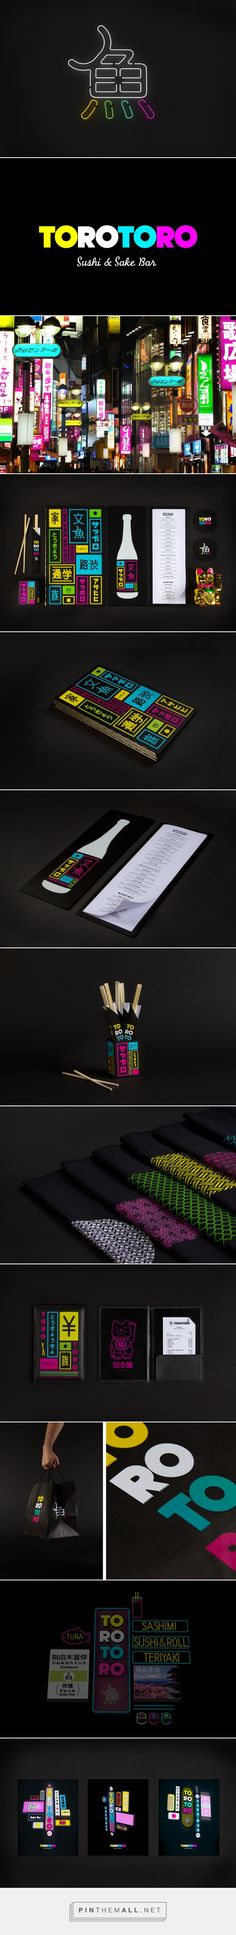 SAVVY STUDIO  |  Torotoro restaurant identity, packaging, branding curated by Packaging Diva PD. Sushi's on my mind for lunch : ) PD